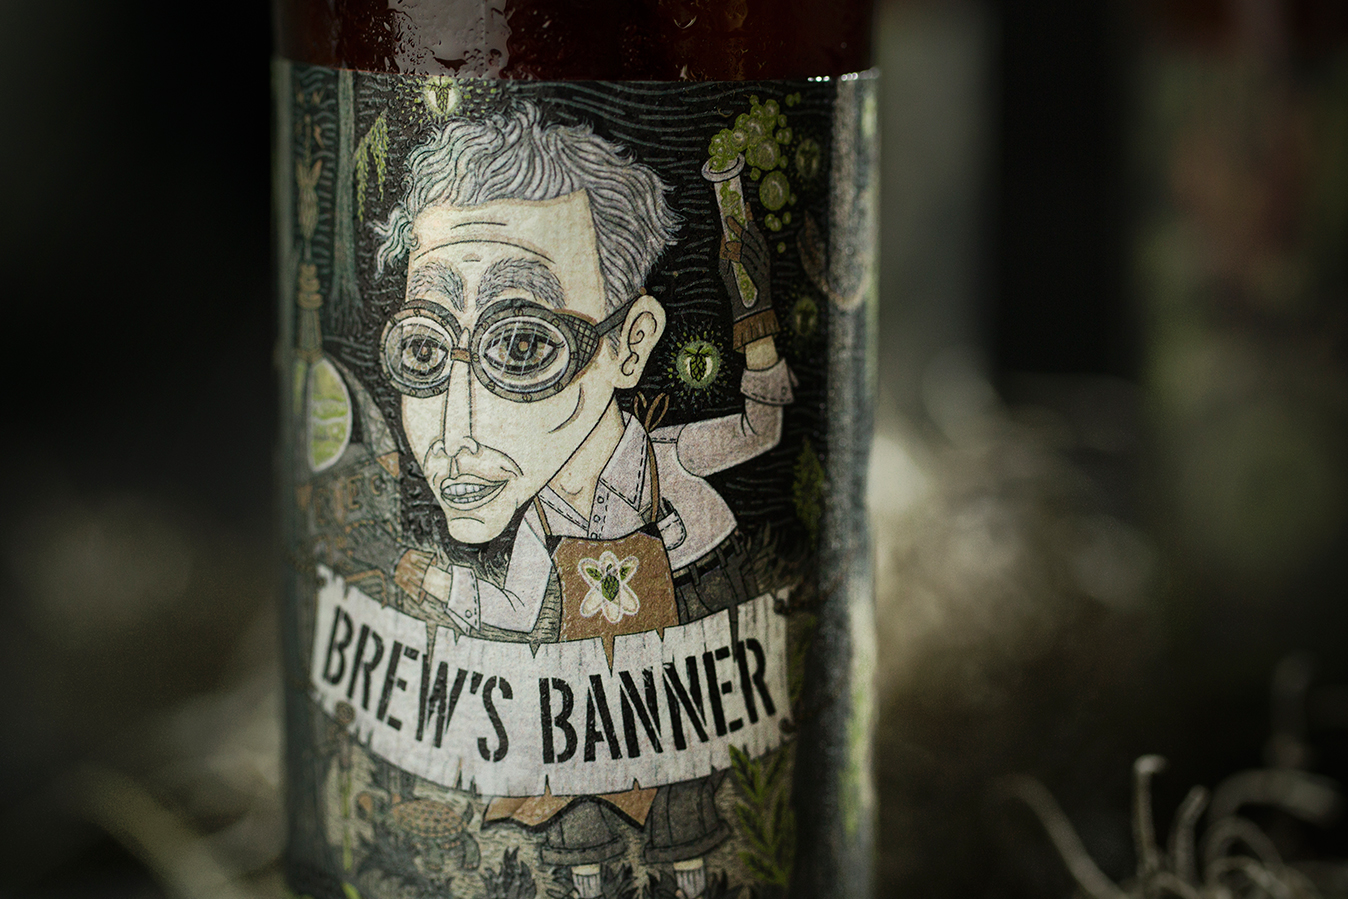 Coppertail Brews Banner Imperial IPA